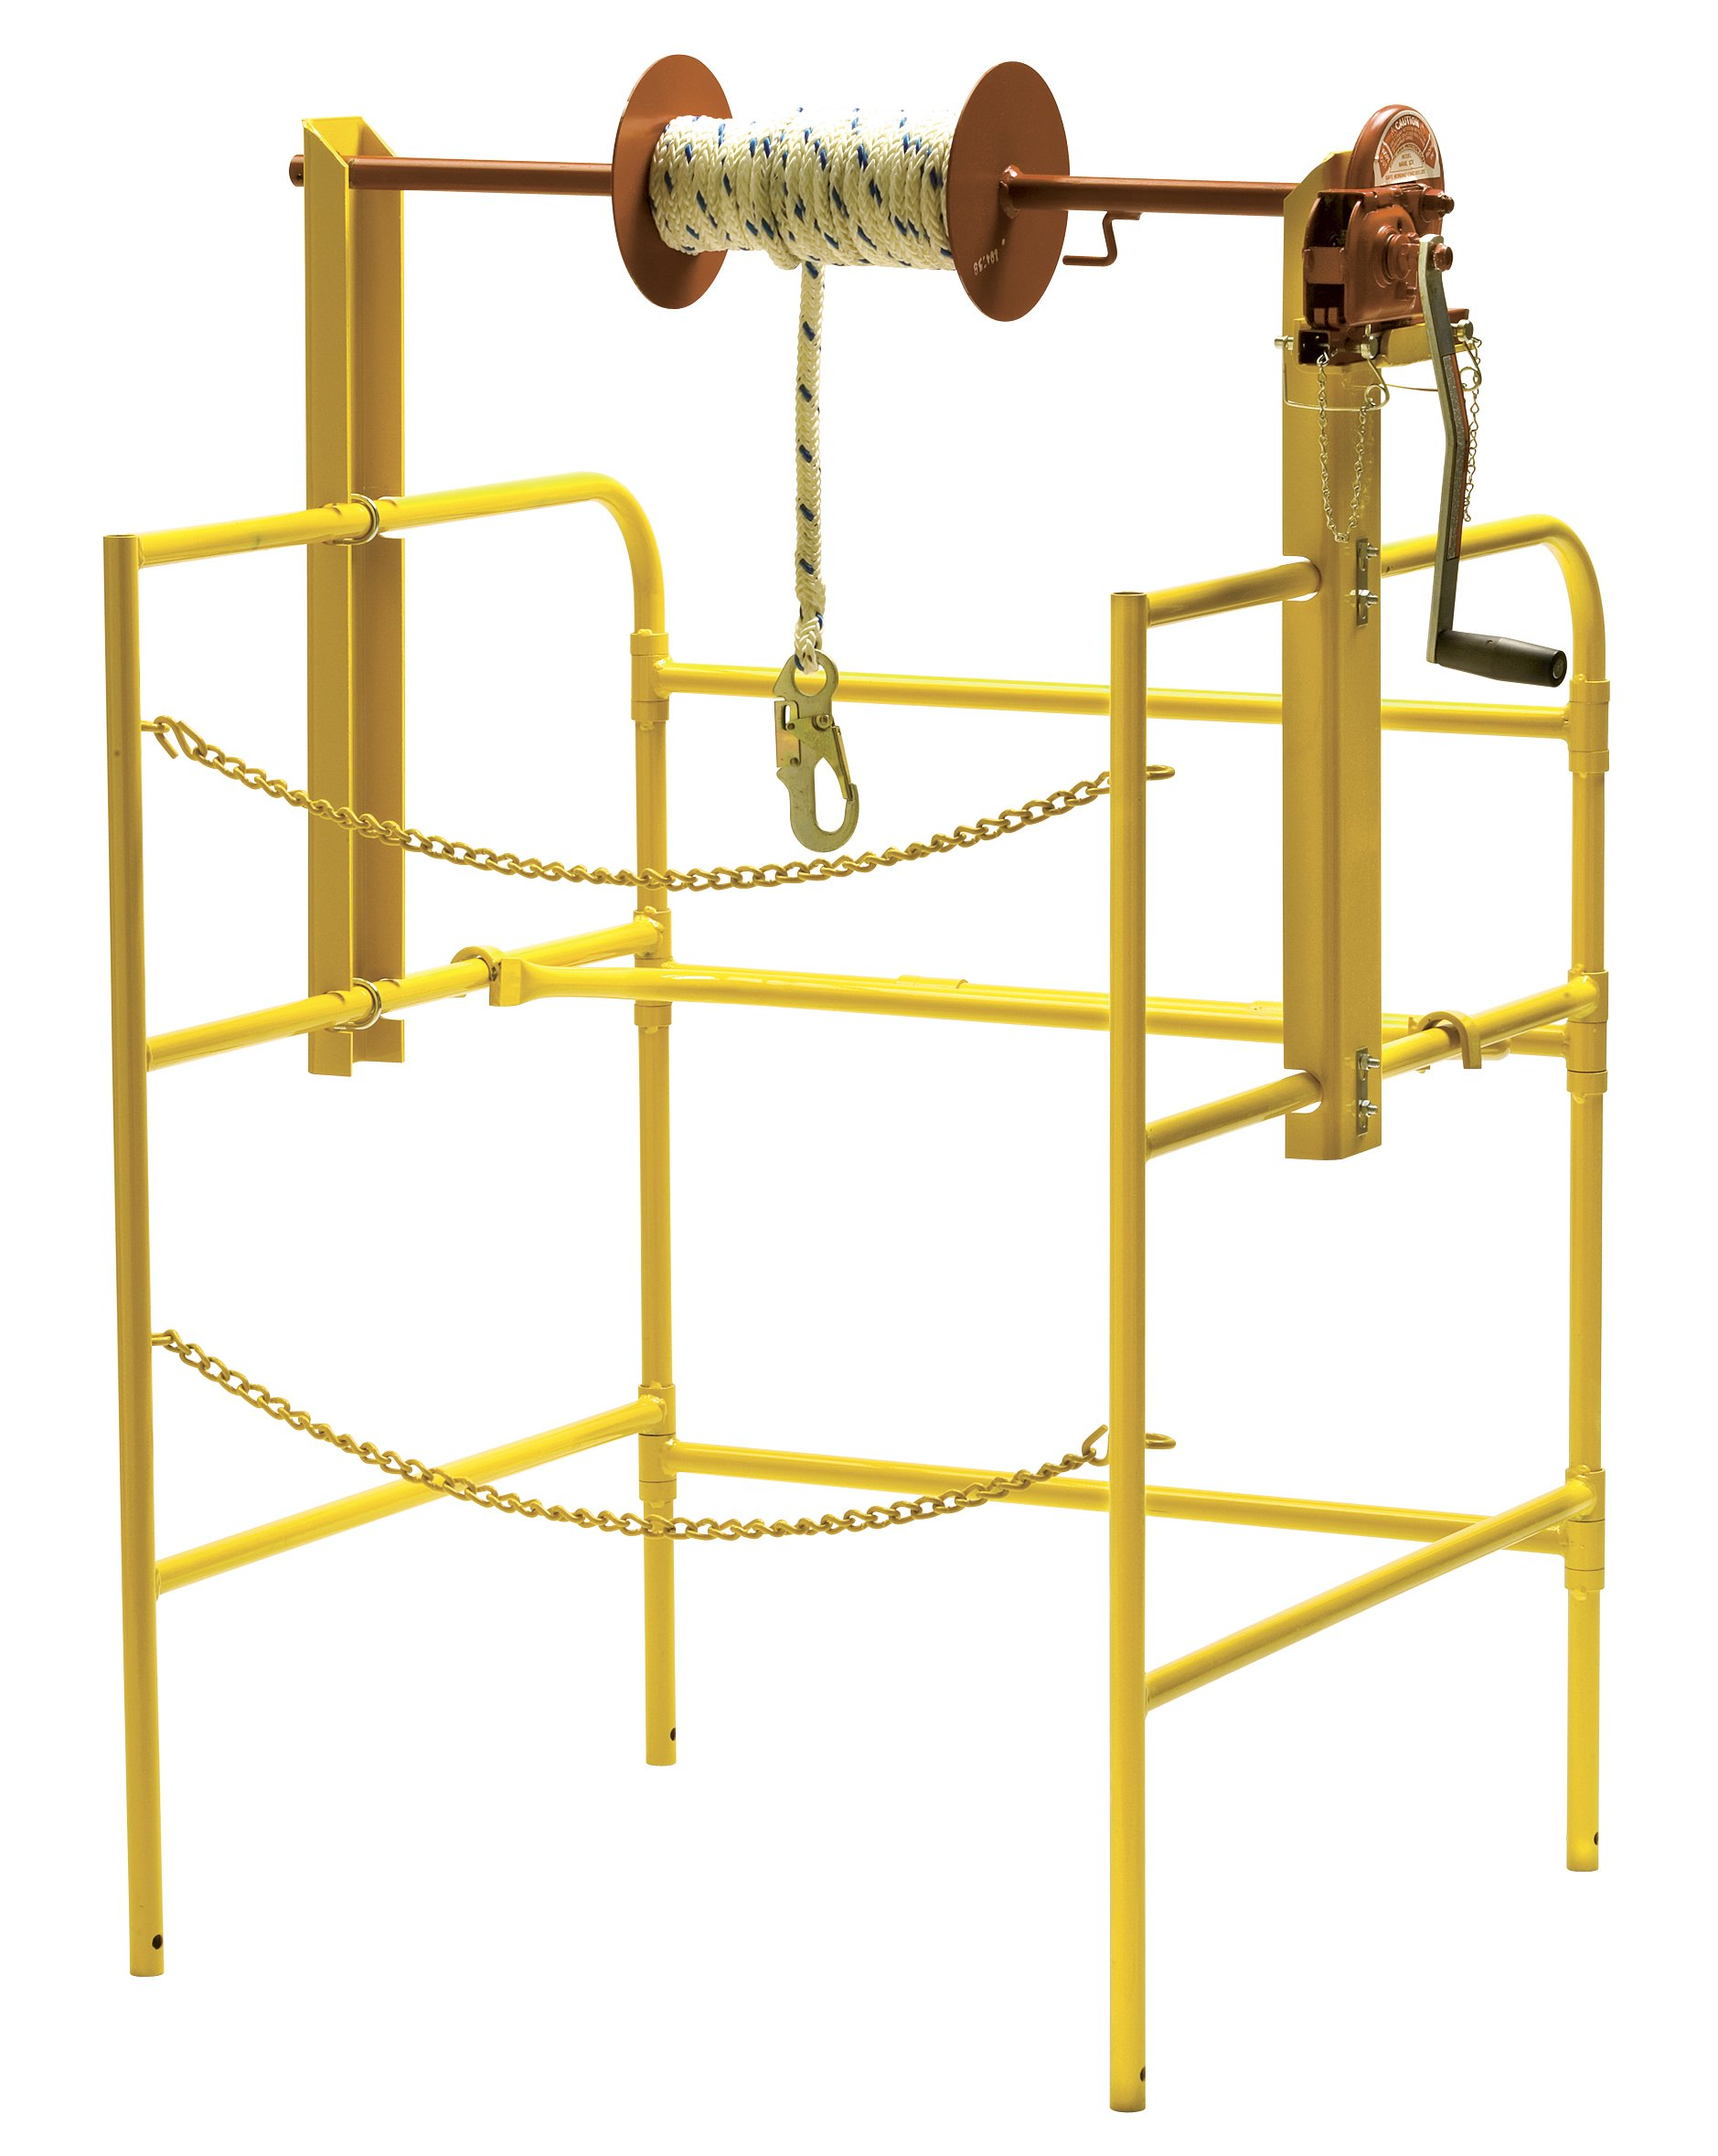 Work Area Protection WAML-42DX On-Top Manhole Material Lift, 42'' Width